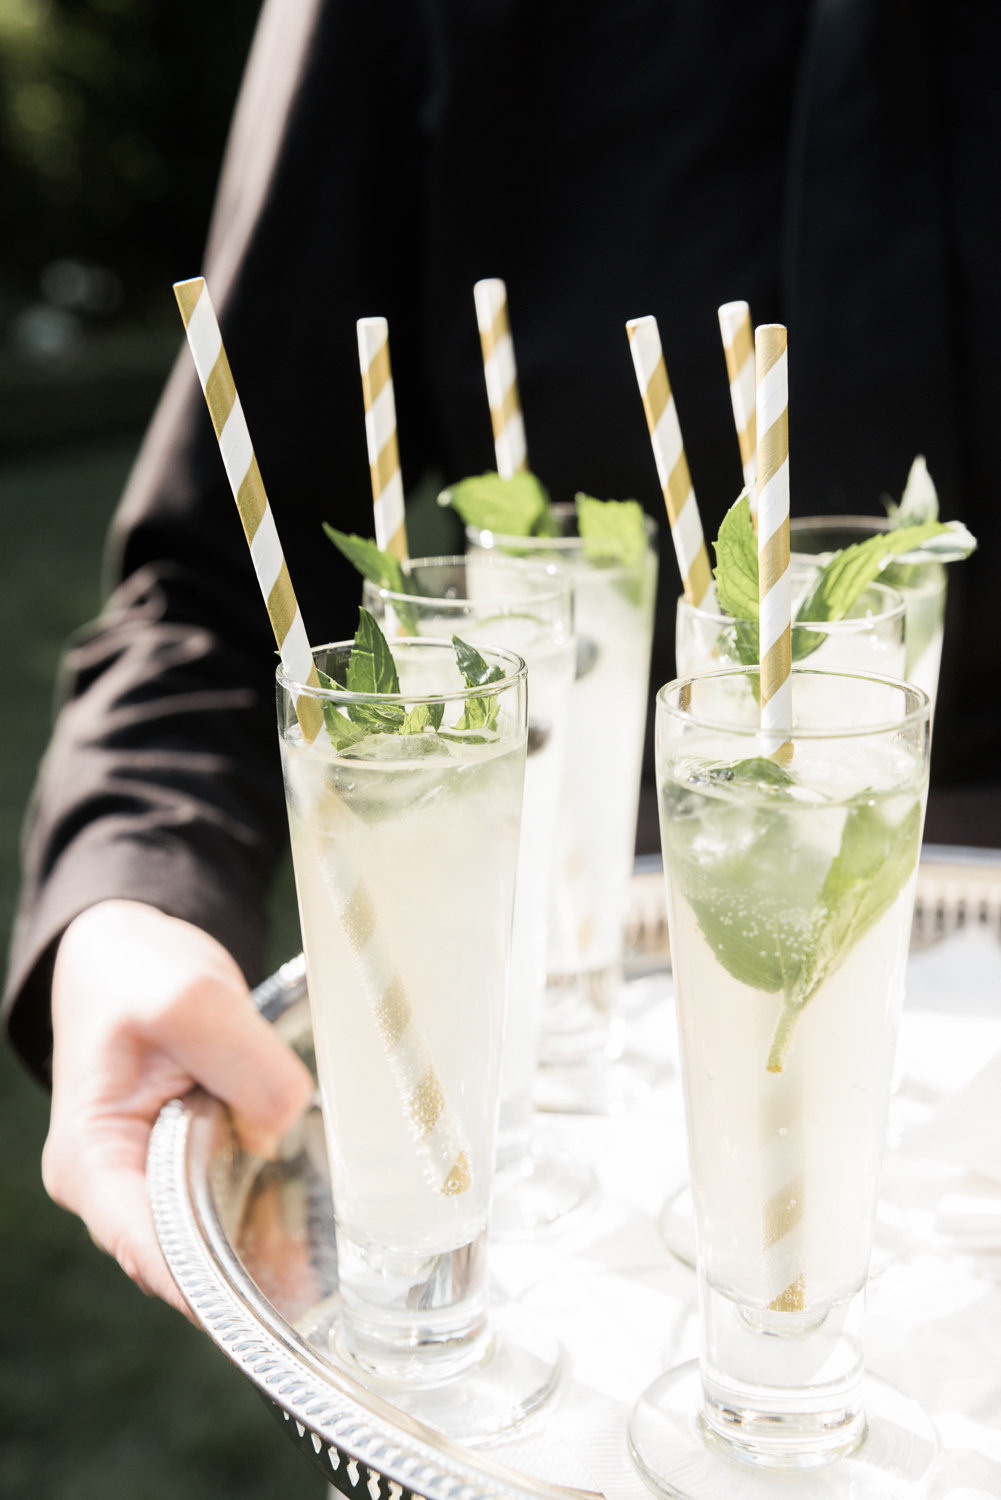 Fizzy gin cocktails with mint garnish